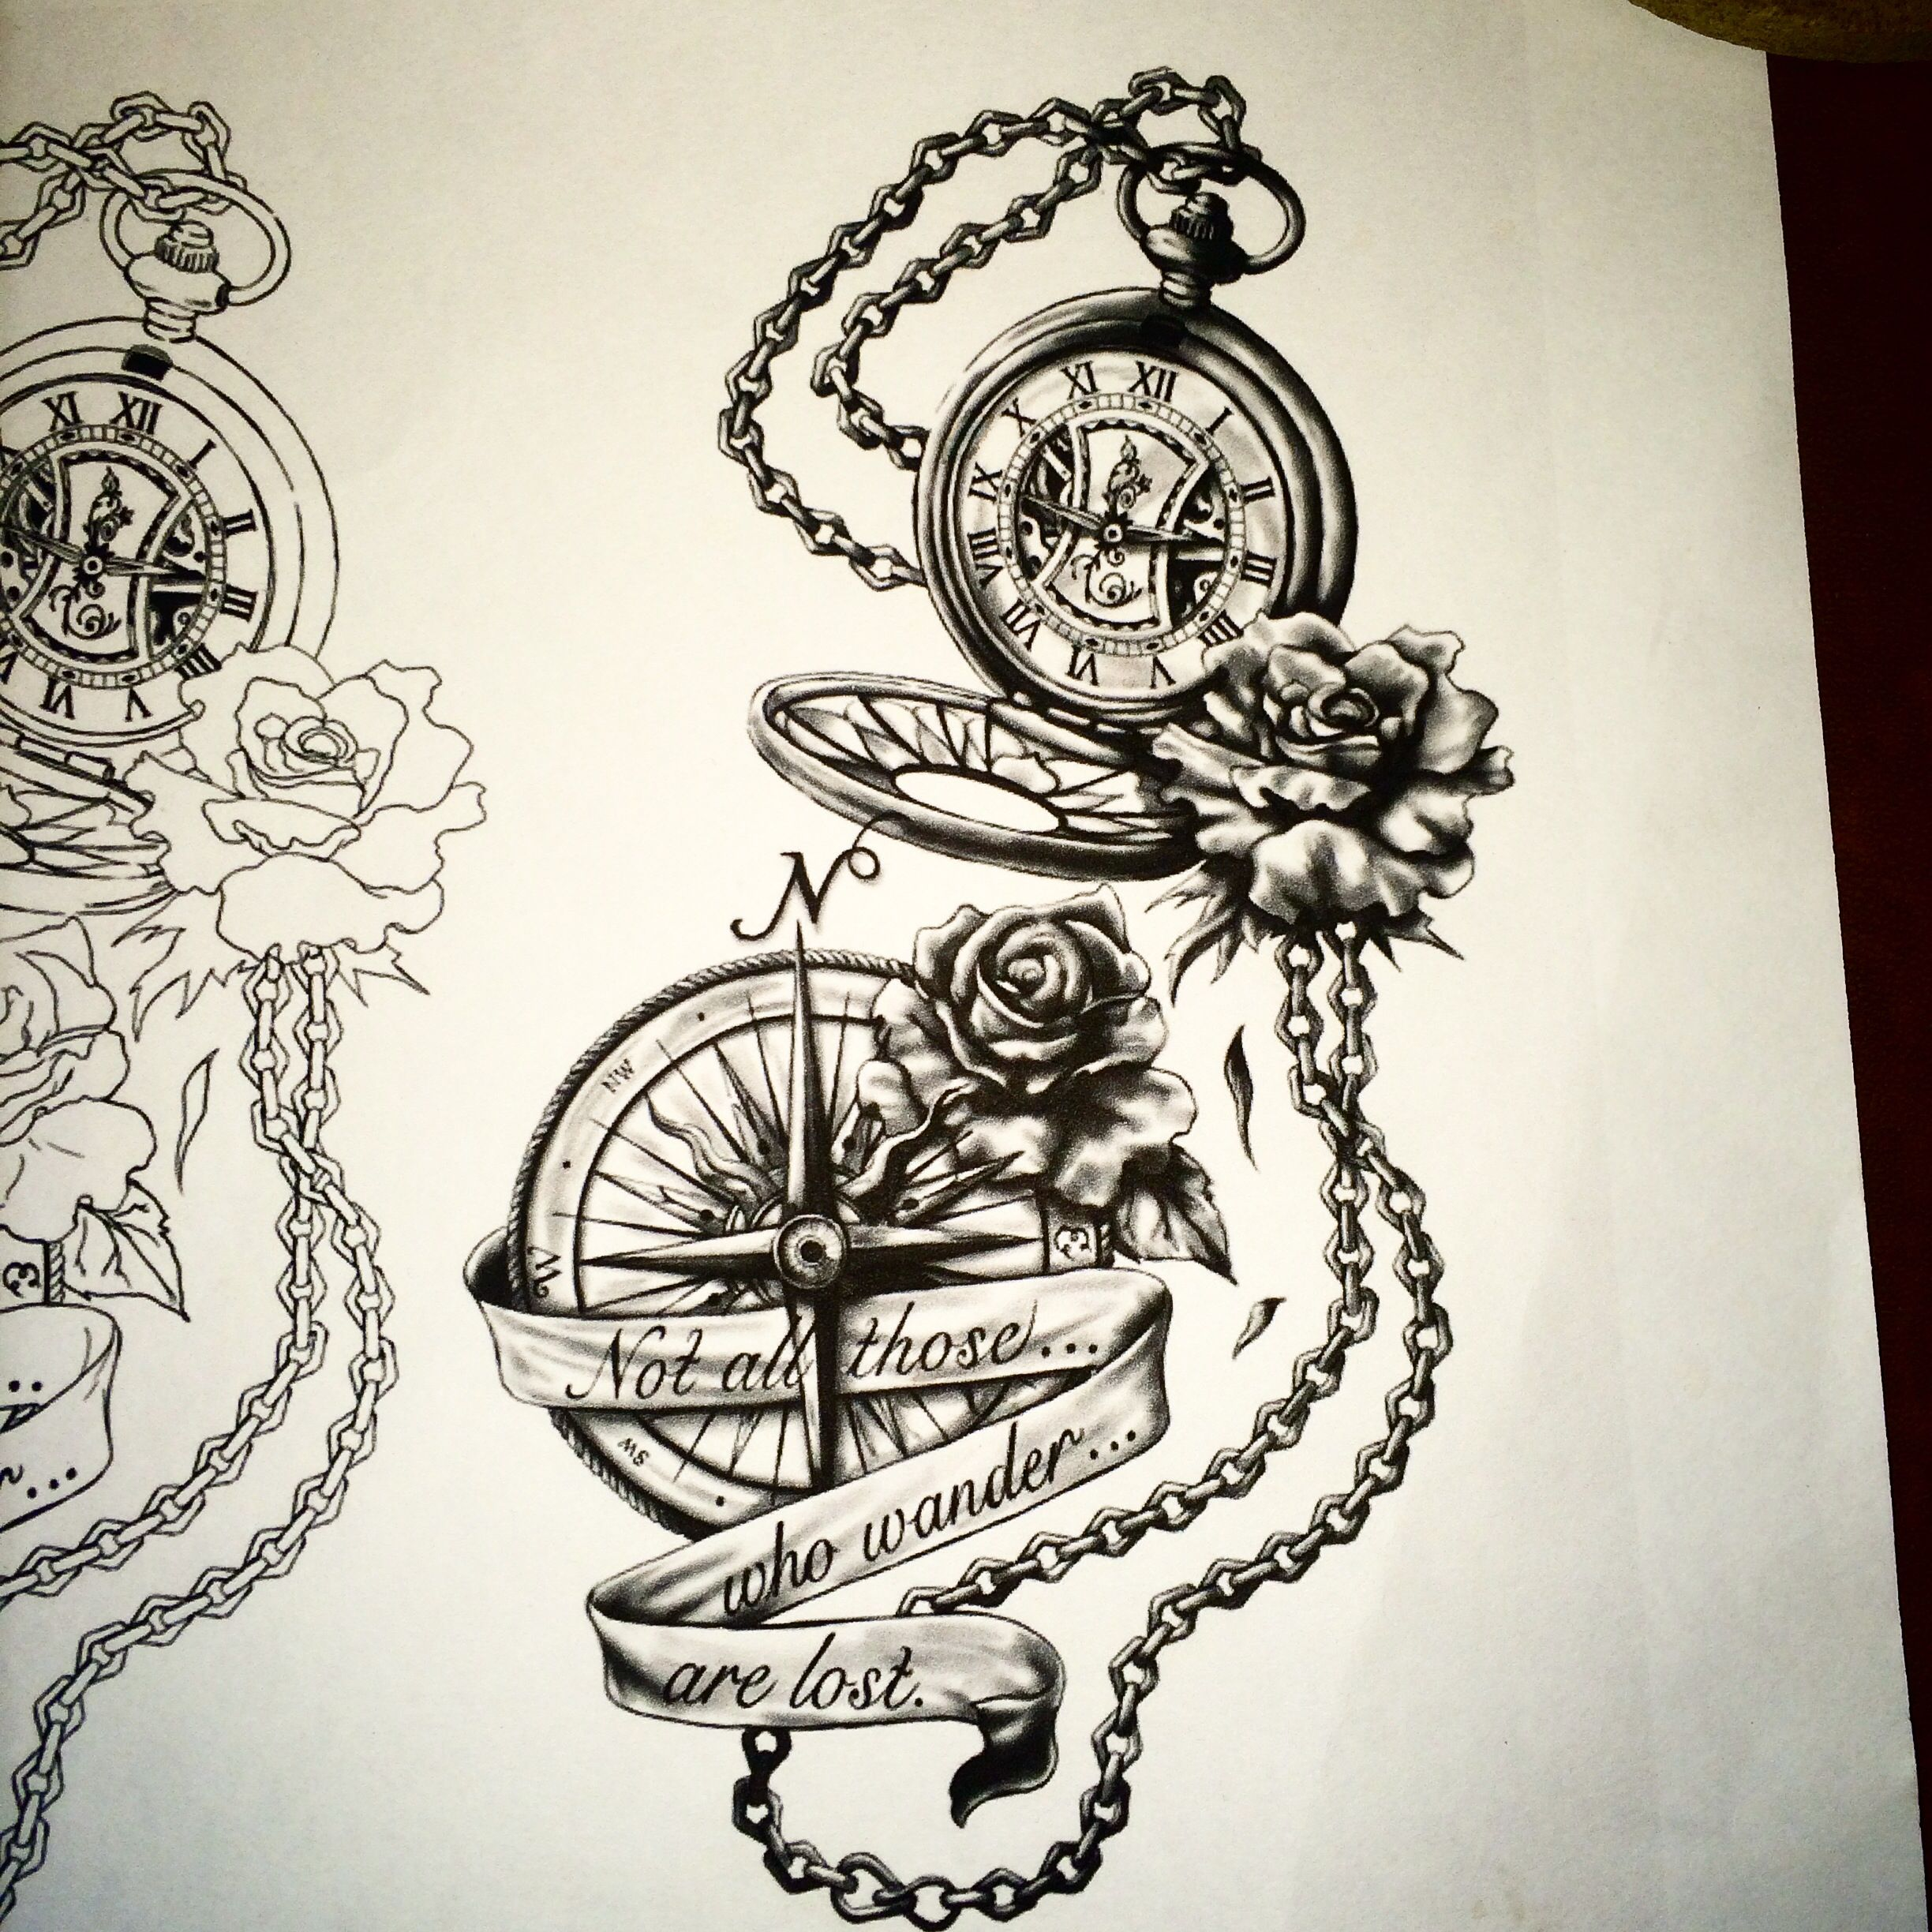 Cool tattoo design | Tattoos | Pinterest | Tattoo designs ...